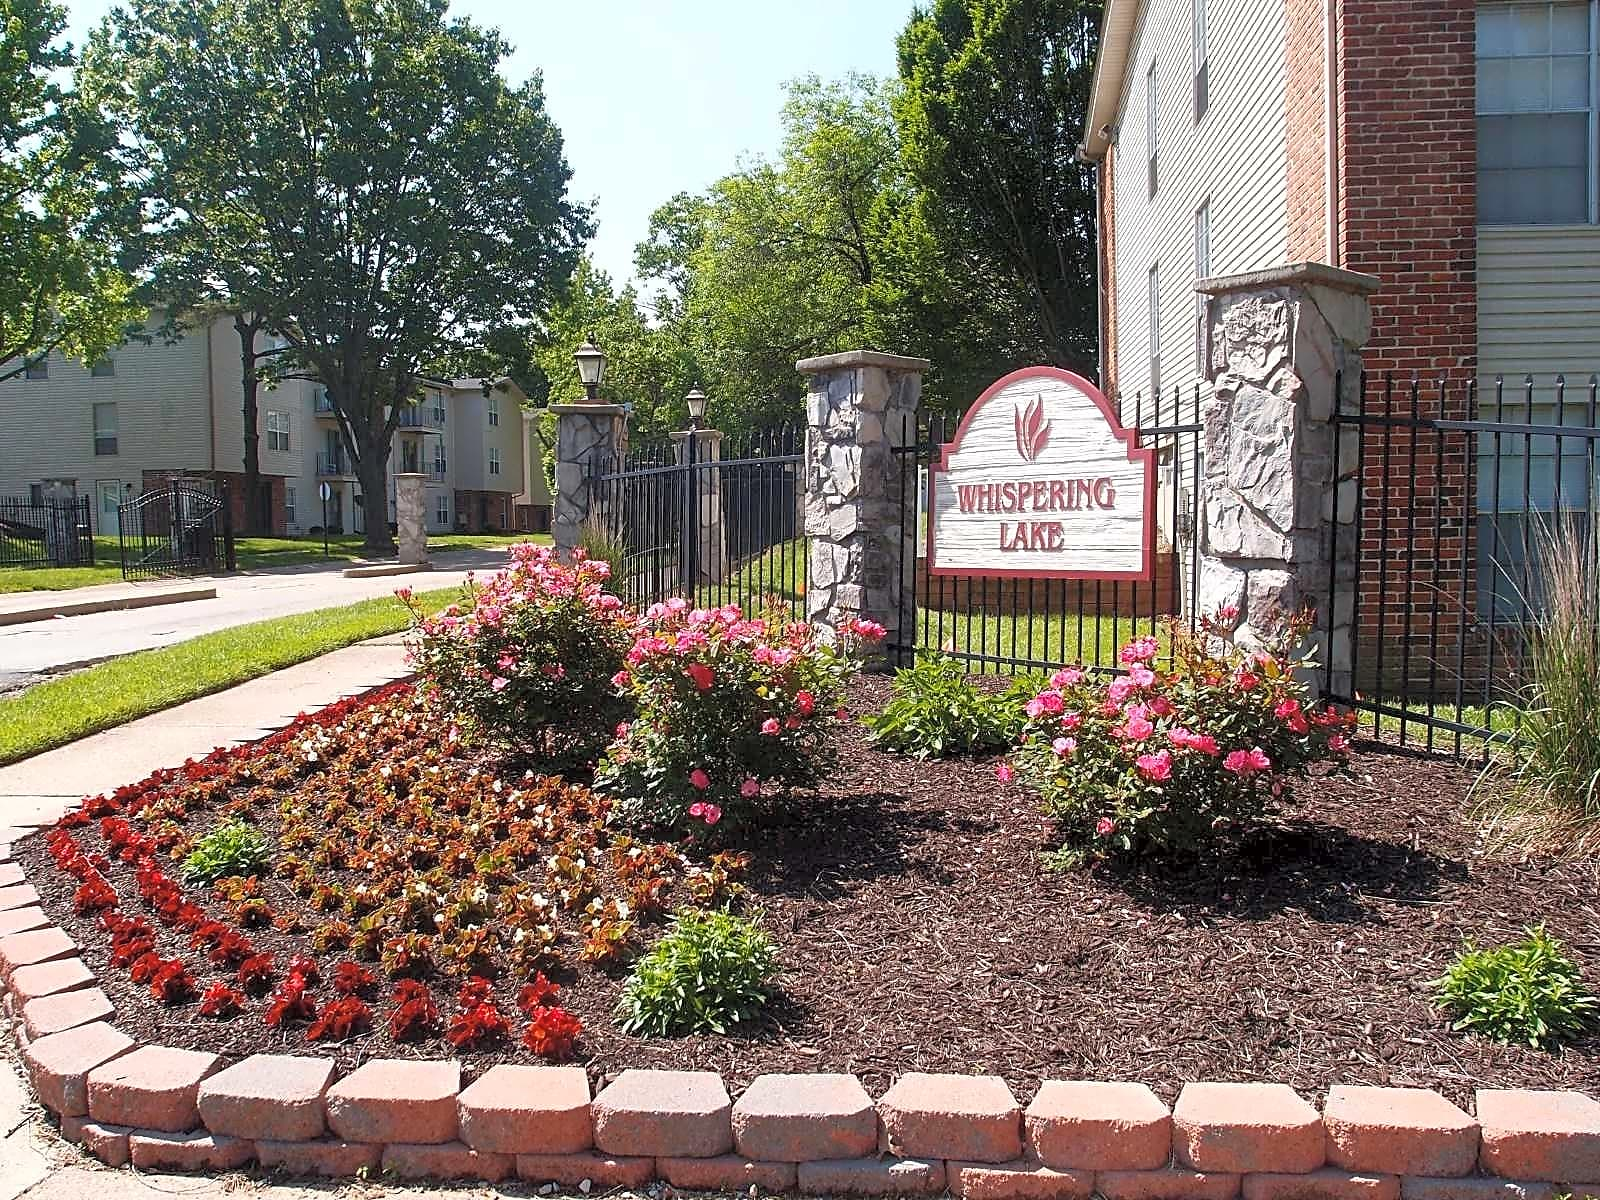 Apartments Near St. Louis Whispering Lake for Saint Louis Students in Saint Louis, MO